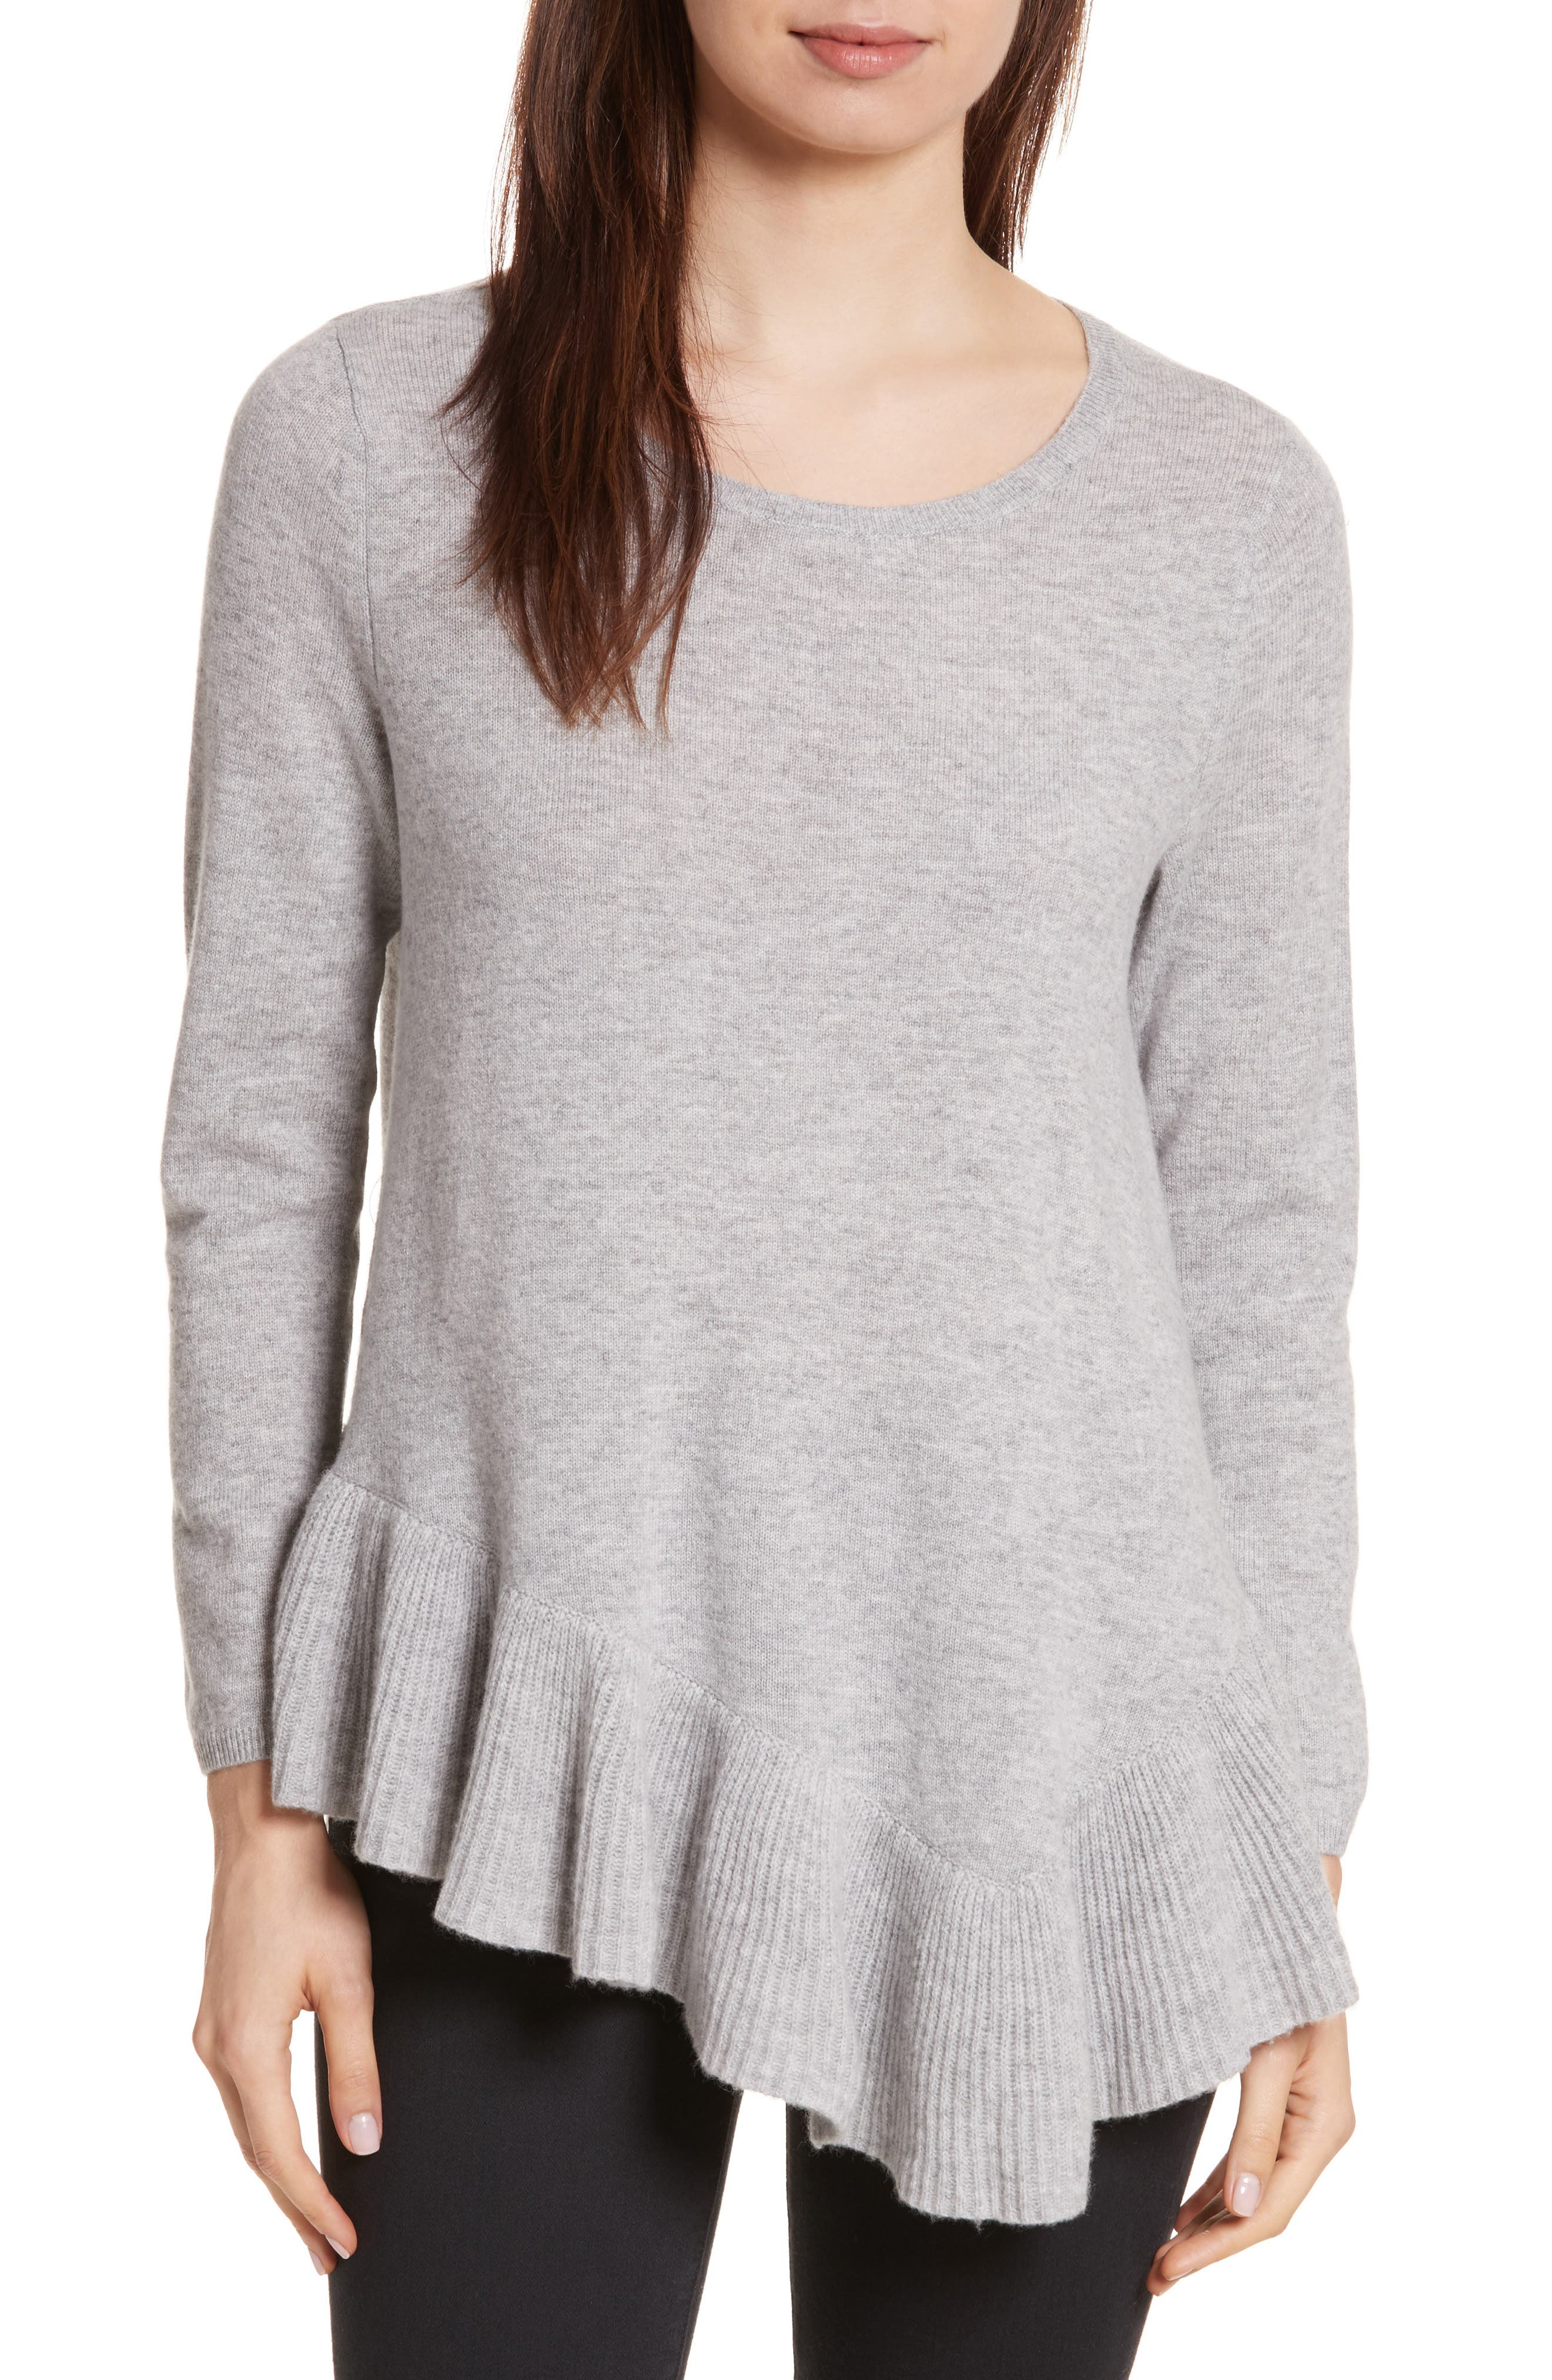 Tunic Length Sweaters & Sweatshirts, Cowl Necks, Cable Knits ...